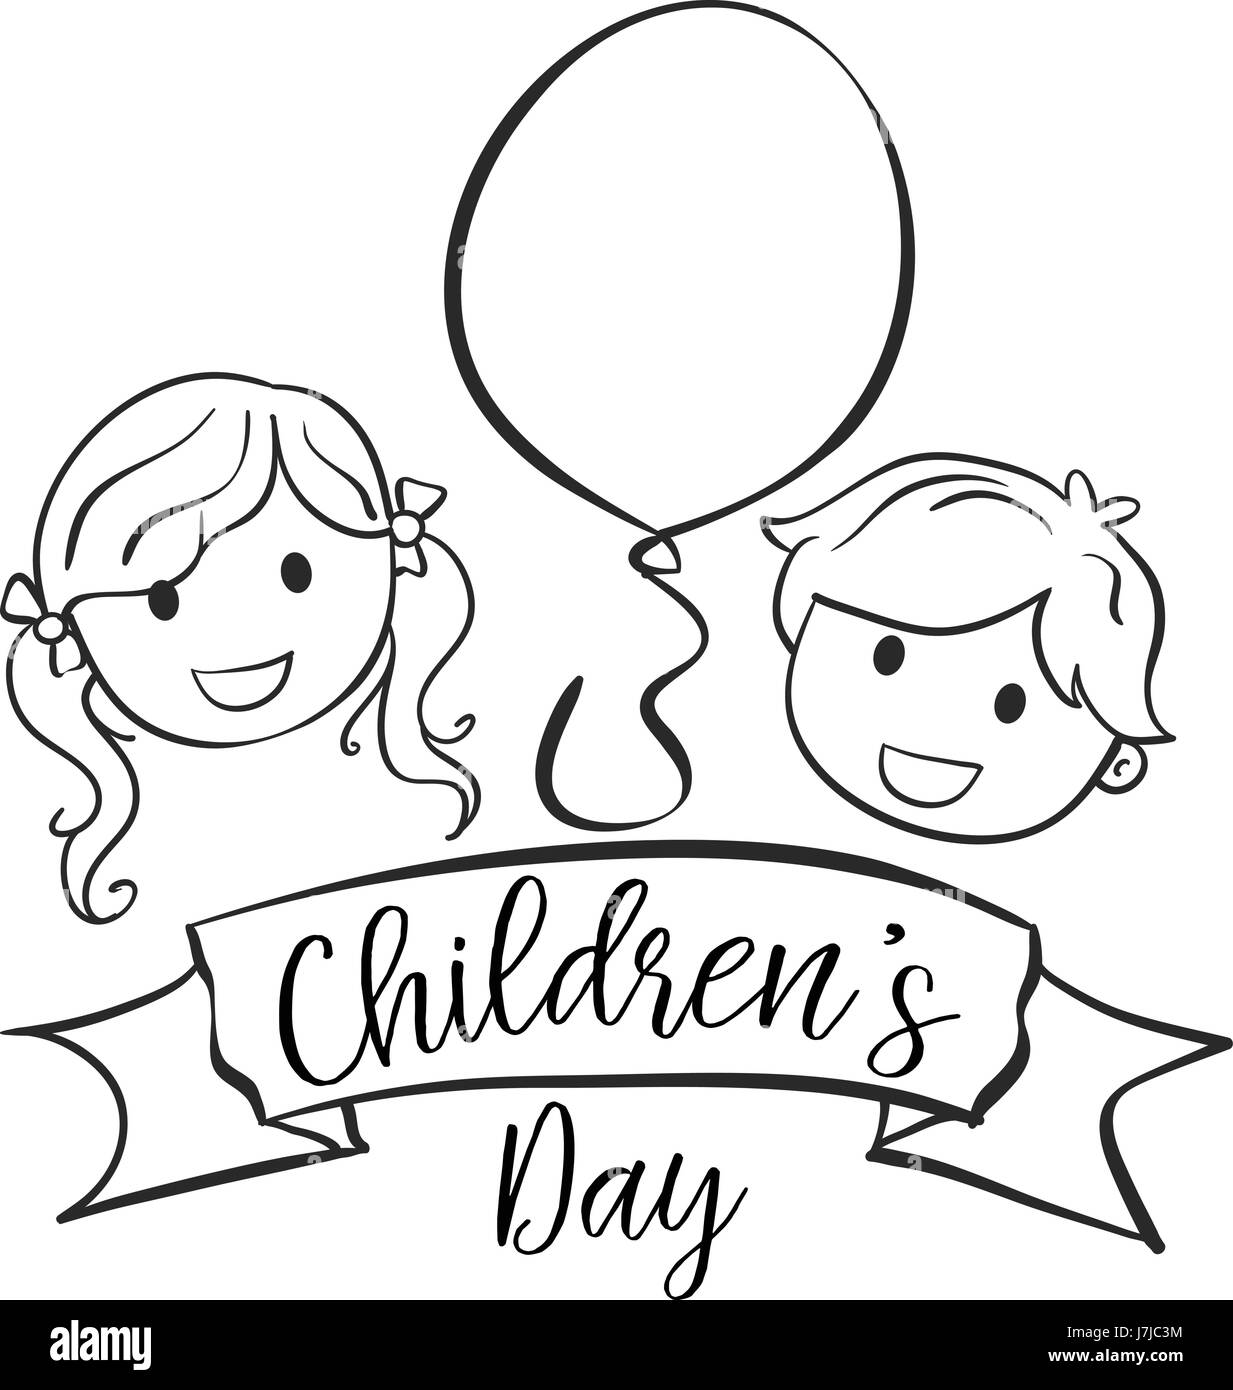 easy drawings of childrens day